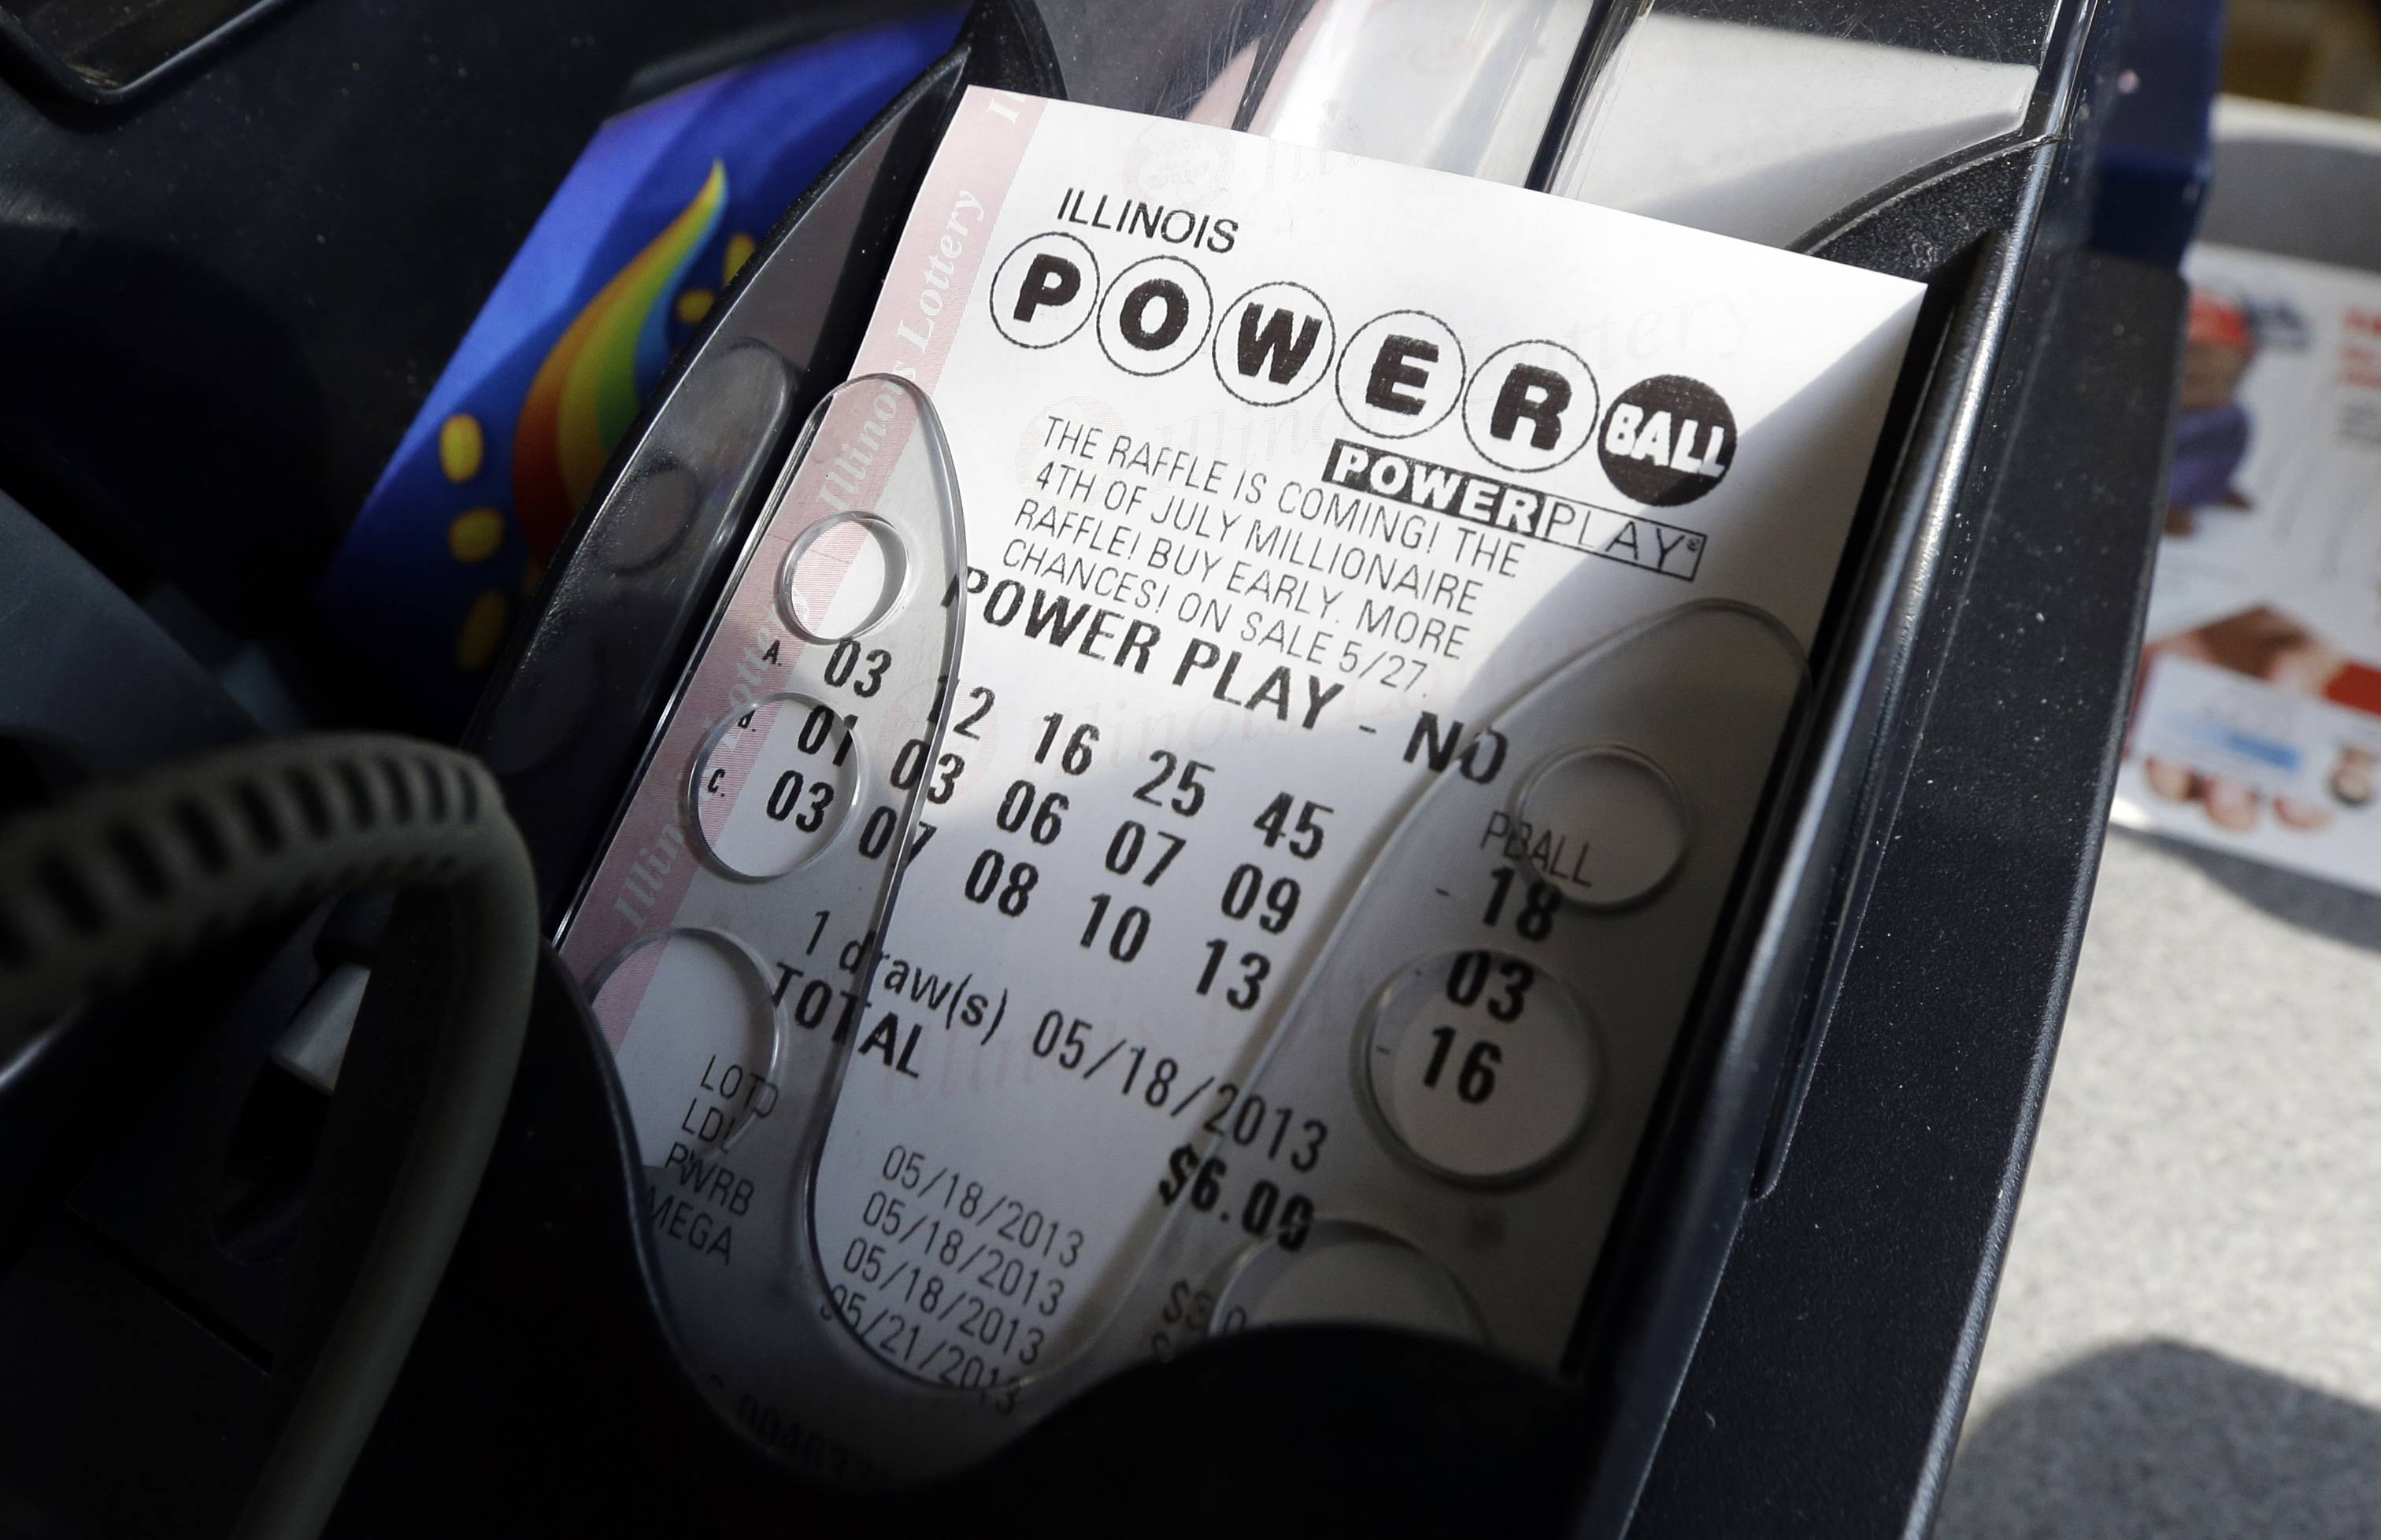 According to lottery officials there were no jackpot winners for Saturday's drawing. The current estimated jackpot for Wednesday's drawing's jackpot is estimated at $400 million or $227.8 million in cash value.